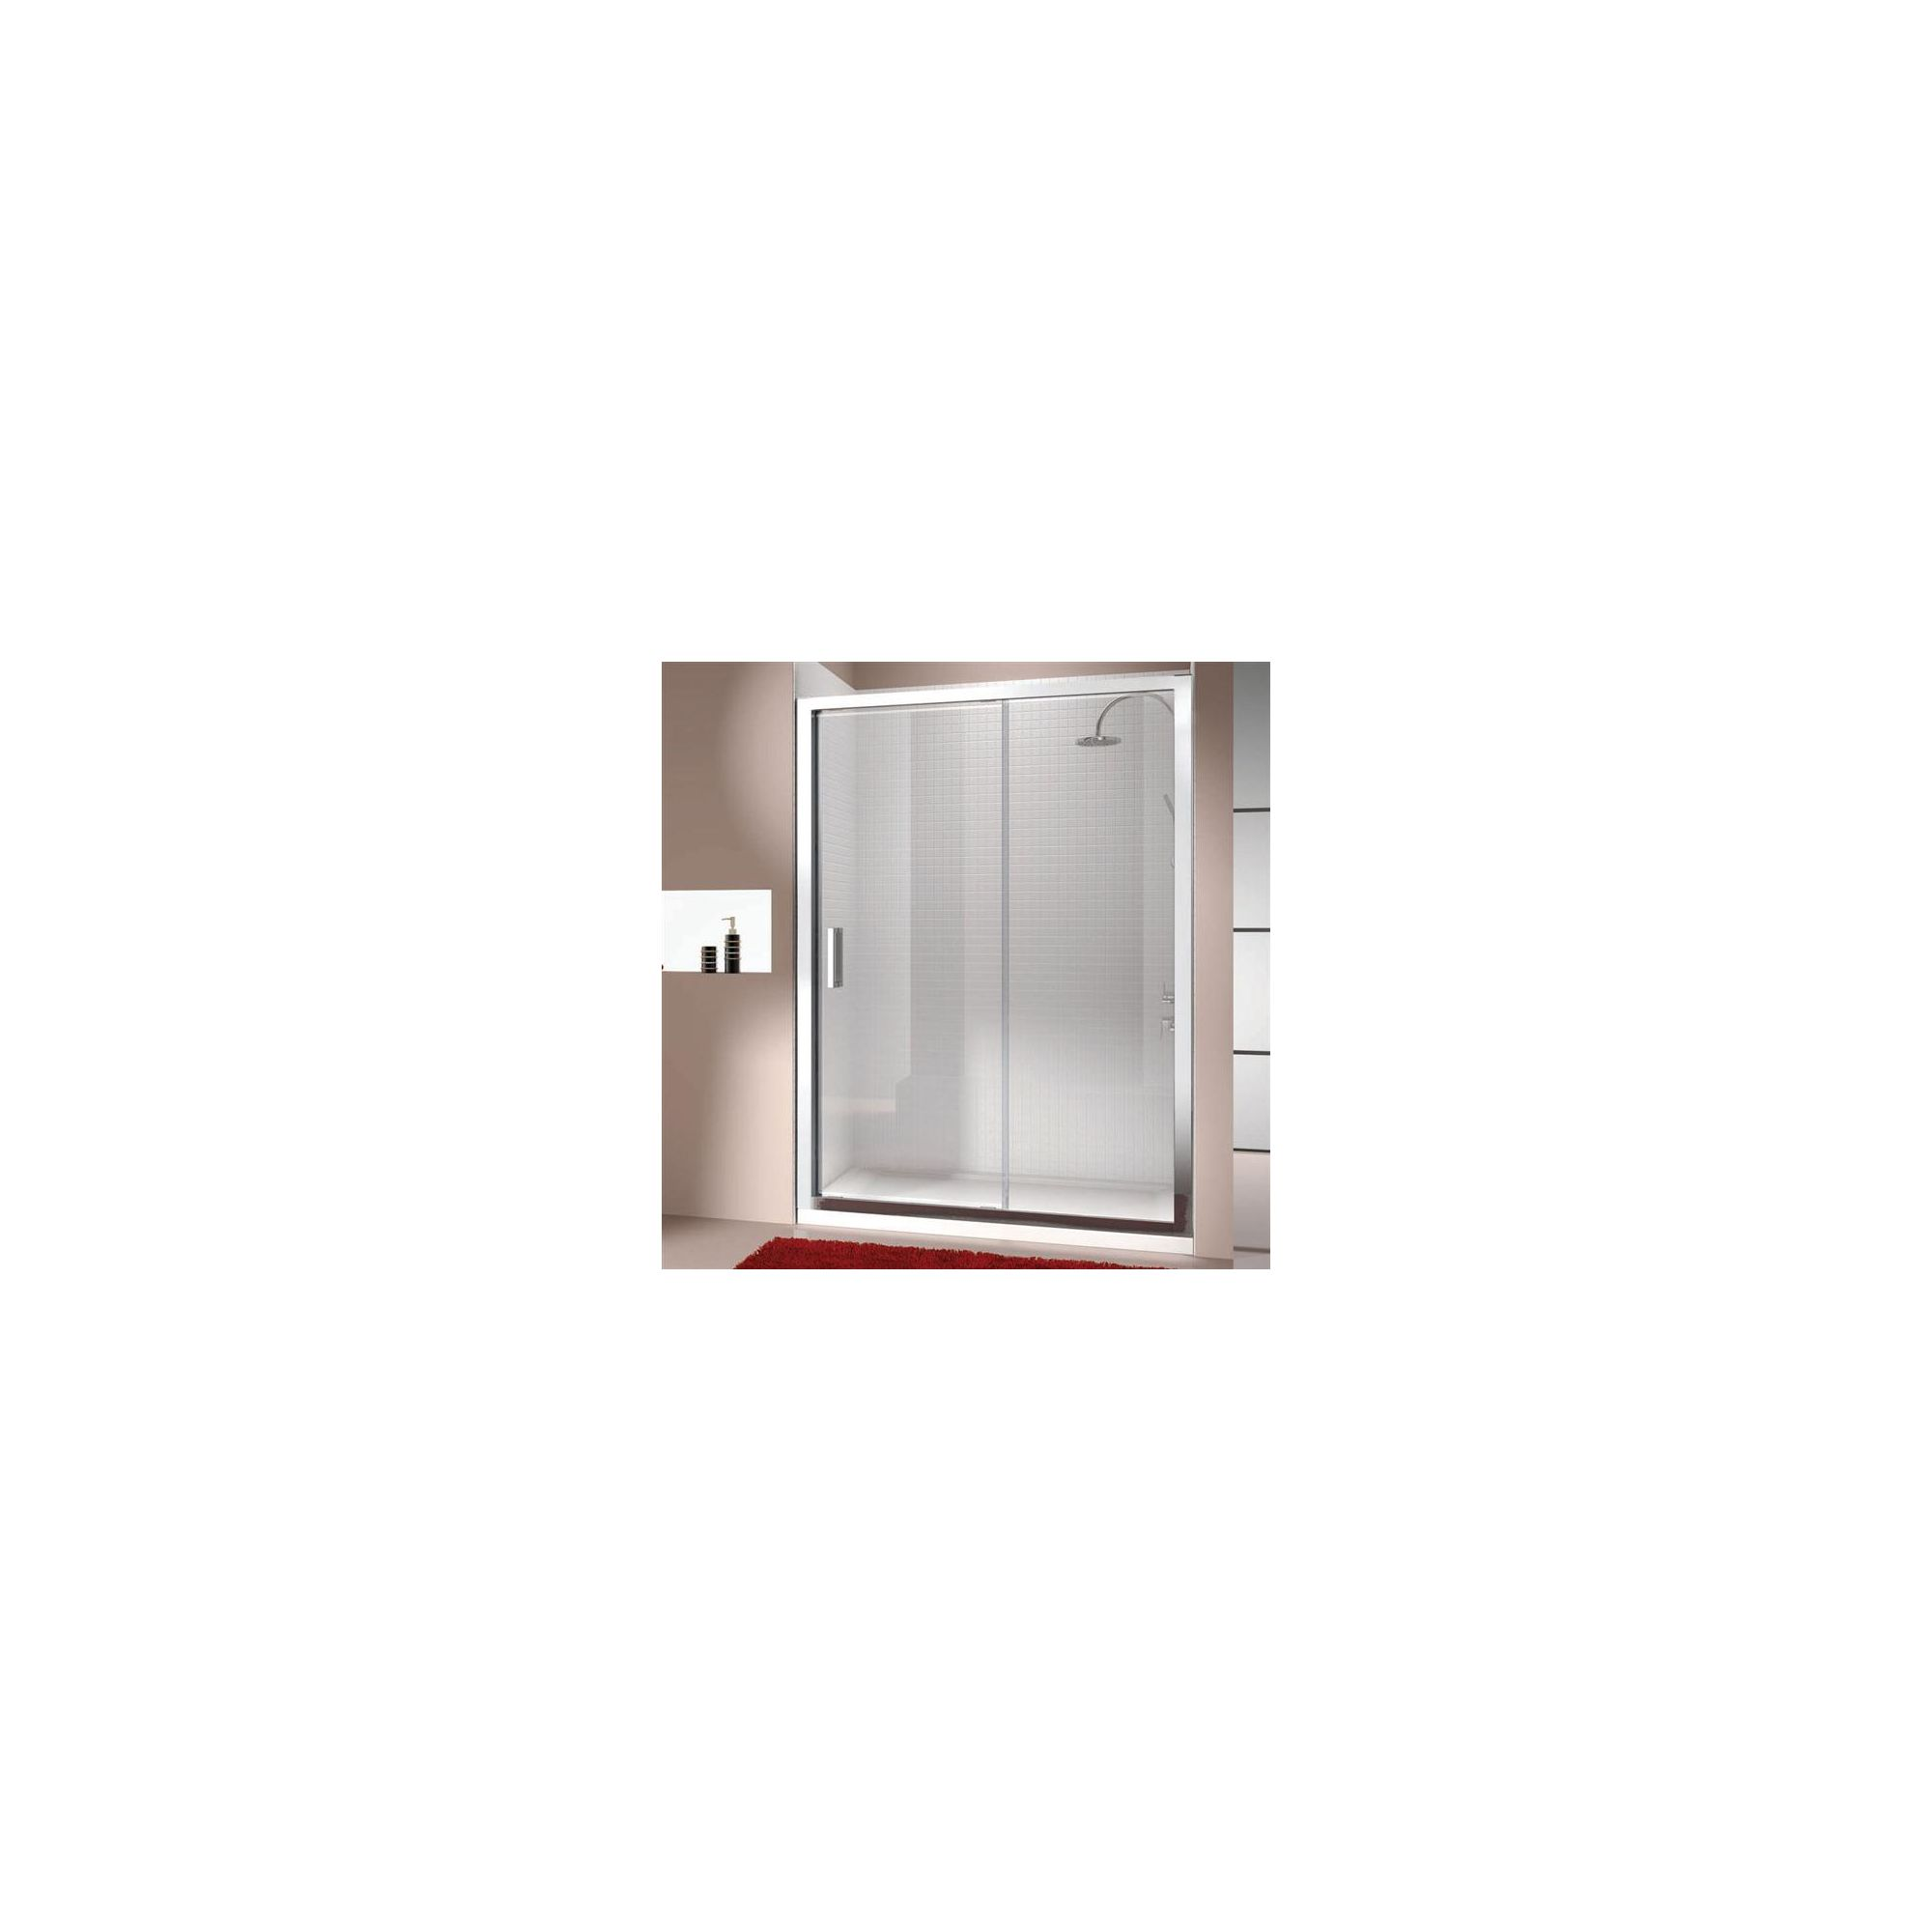 Merlyn Vivid Eight Sliding Door Alcove Shower Enclosure, 1200mm x 900mm, Low Profile Tray, 8mm Glass at Tesco Direct